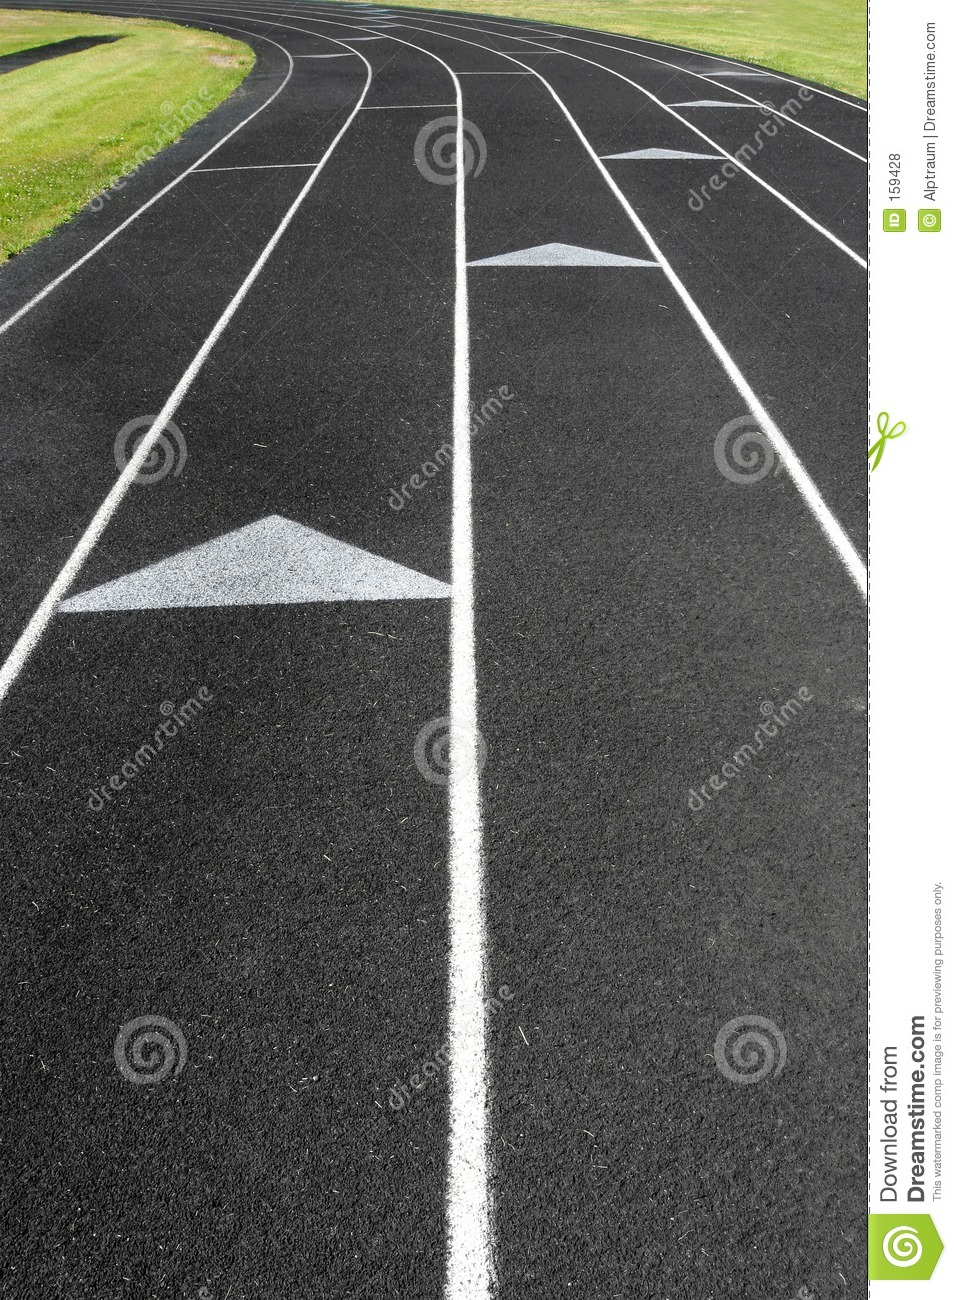 Sumário do atletismo